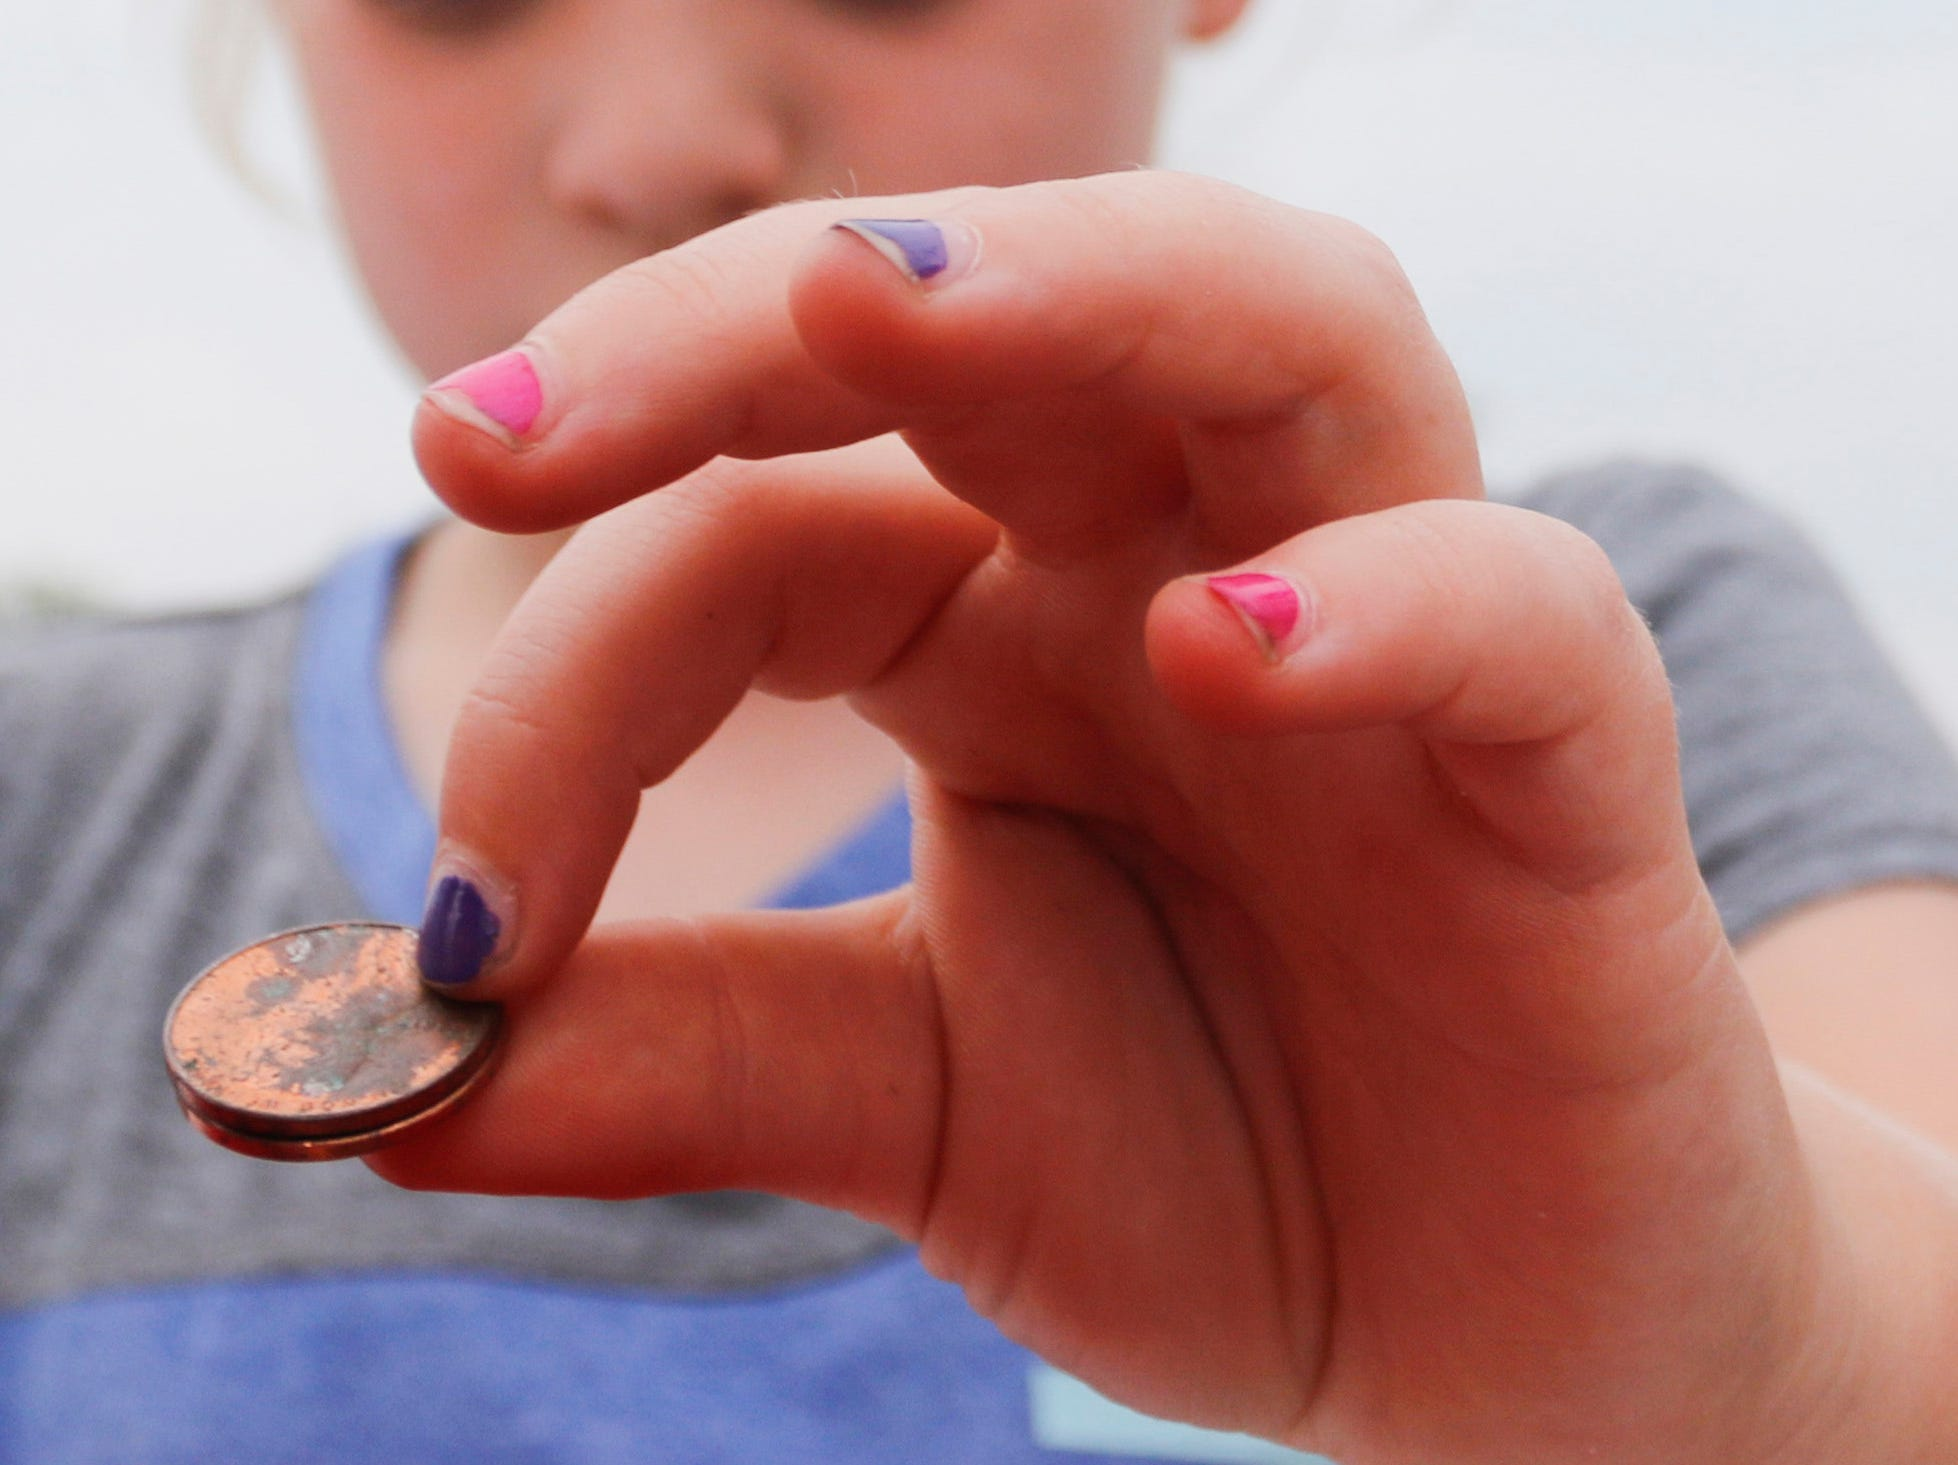 A girl donates pennies to the penny war during the National Night Out event put on by the Wisconsin Rapids Police Department in the Crossview Church parking lot in Wisconsin Rapids Tuesday, August 7, 2018. Participants in the penny war chose to place their change in a container for the Wisconsin Rapids Police Department, Wisconsin Rapids Fire Department and Wood County Sheriff's Department, raising money for the Fly High Memorial Playground.